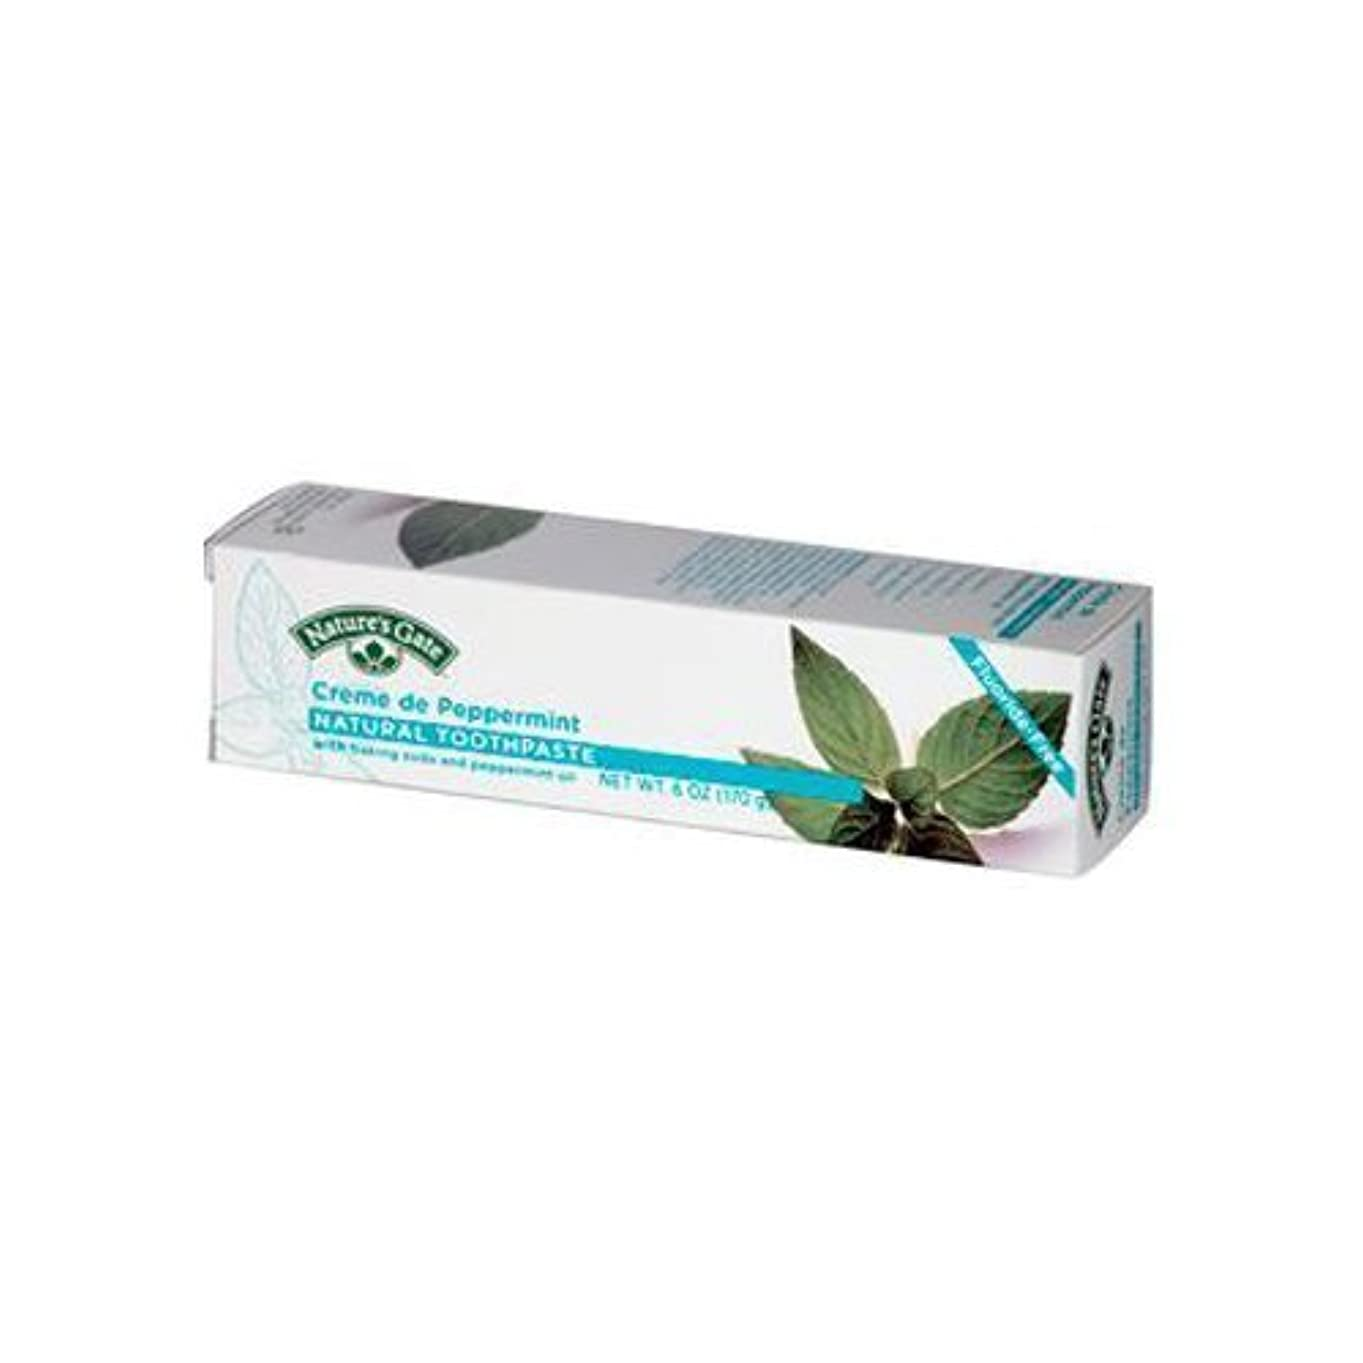 学んだ見捨てる軌道Natures Gate Natural Toothpaste Cr�me De Peppermint - 6 oz - Case of 6 by NATURE'S GATE [並行輸入品]